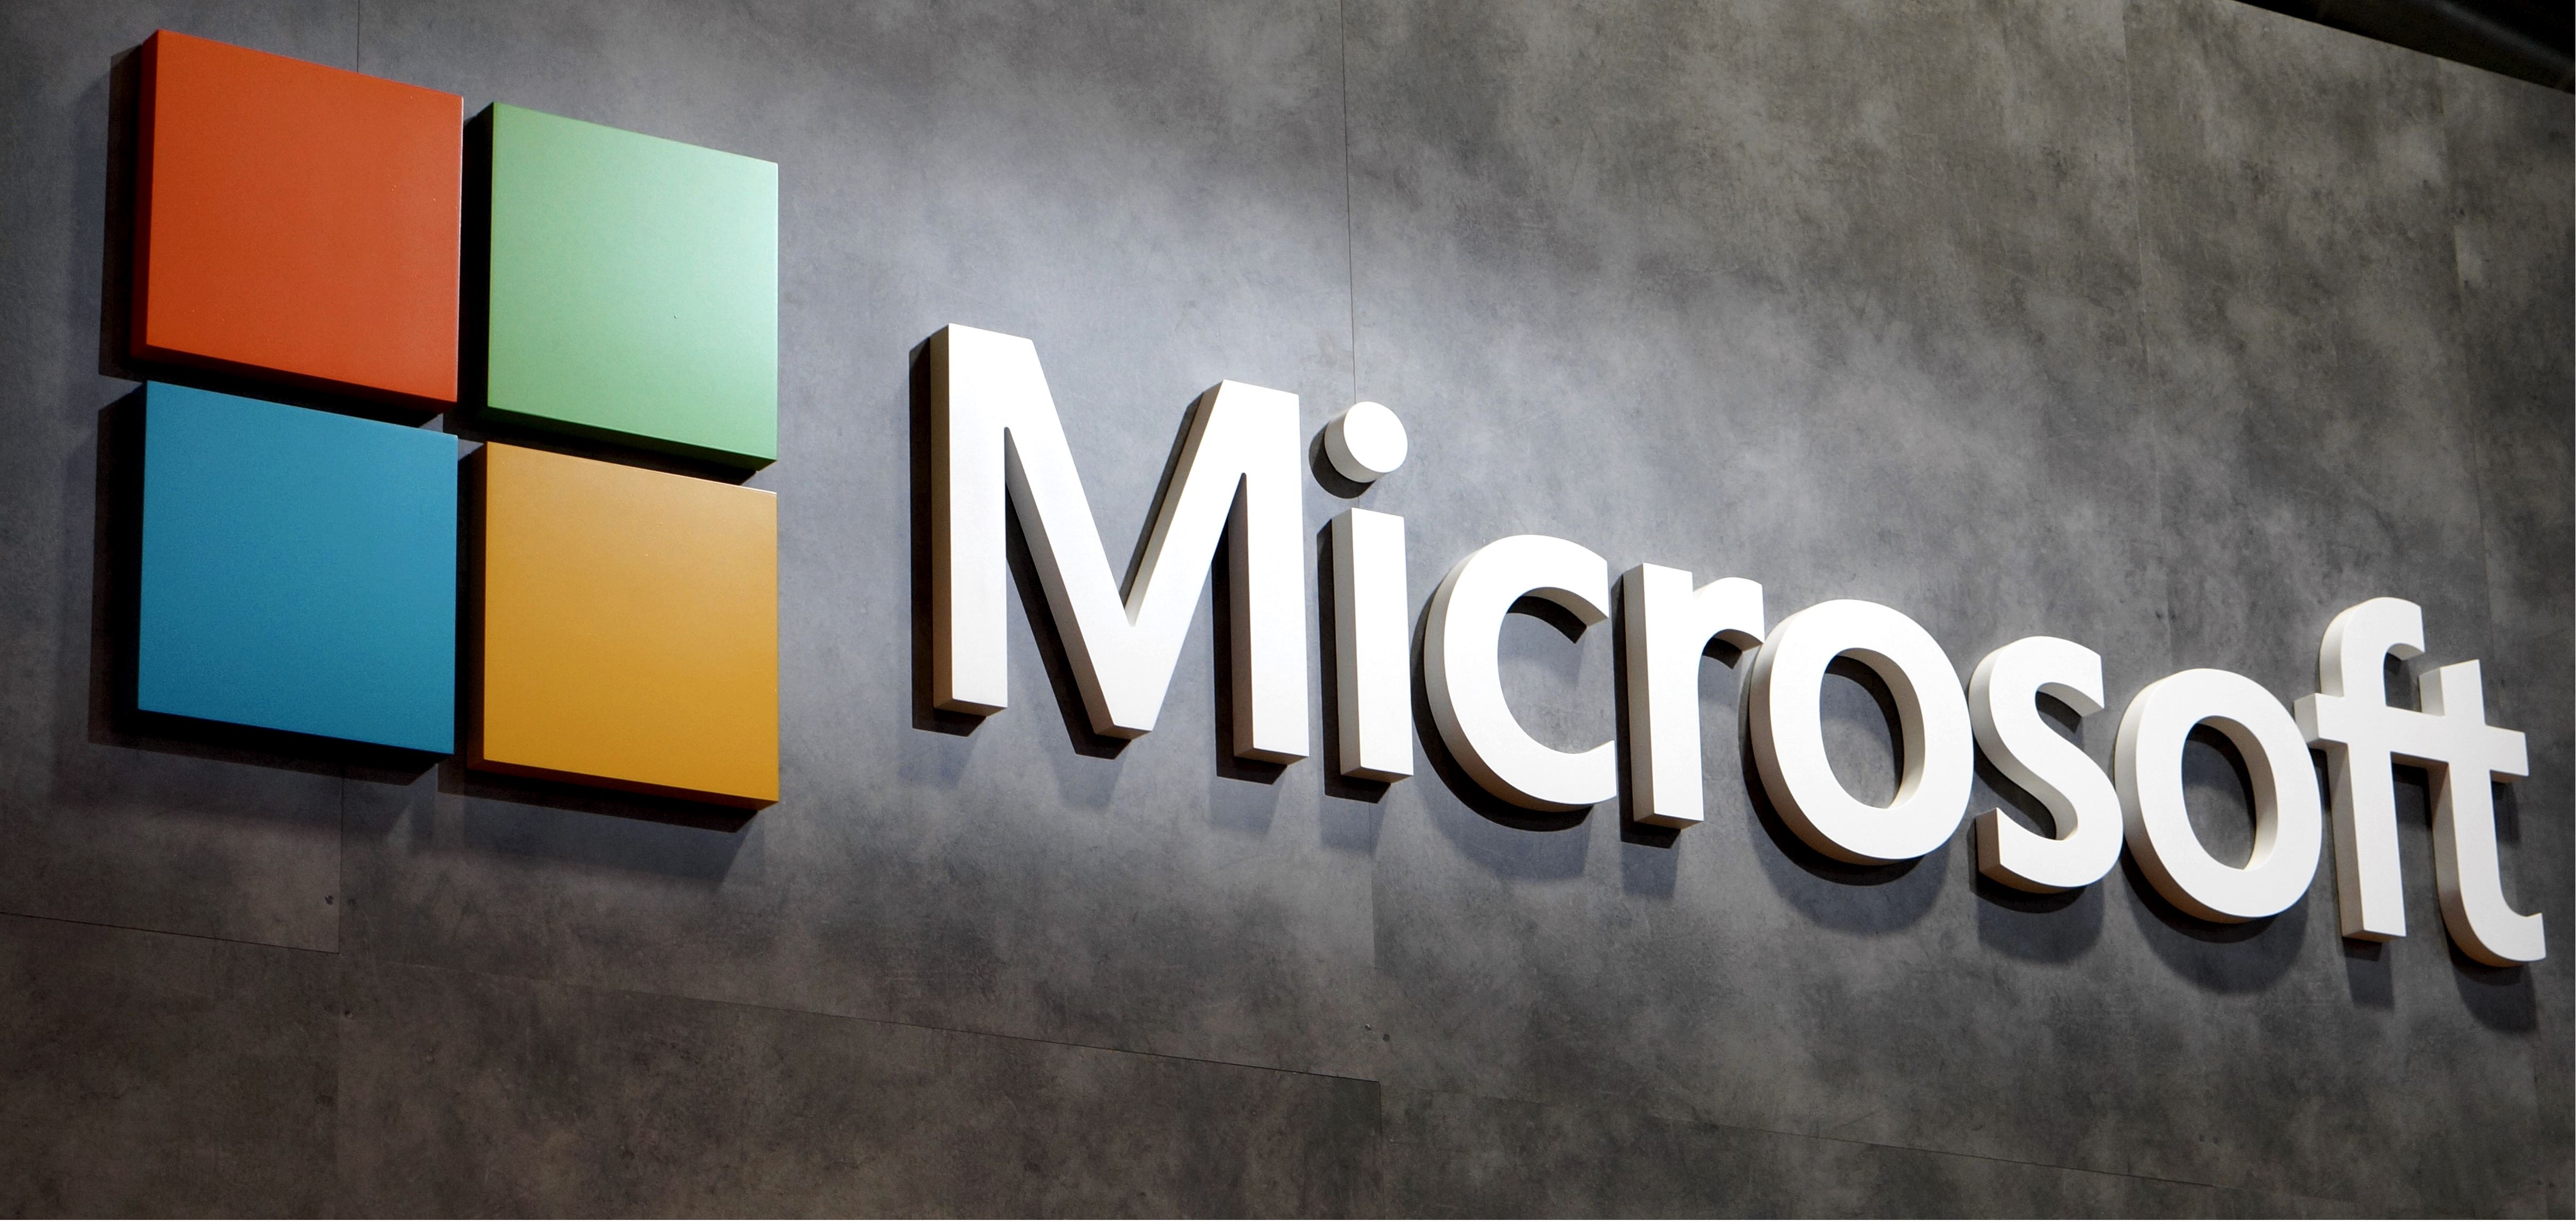 MICROSOFT: Collaborate for free with online versions of Microsoft Word, PowerPoint, Excel, and OneNote. Save documents, spreadsheets, and presentations online